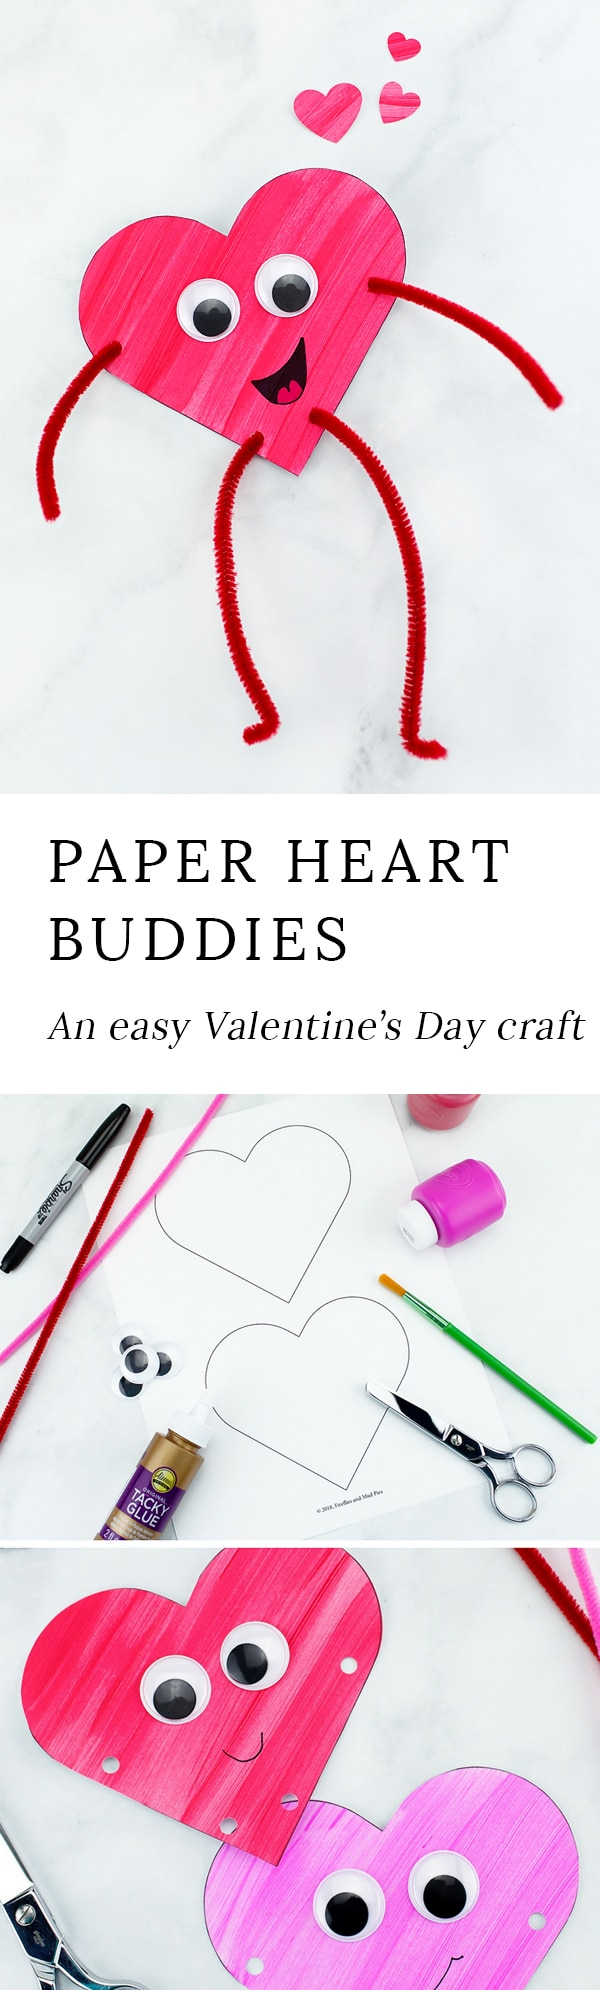 Looking for an easy Valentine's Day craft for kids? Colorful and fun Heart Buddies,made from our free template and basic craft supplies, are perfect for home or school!